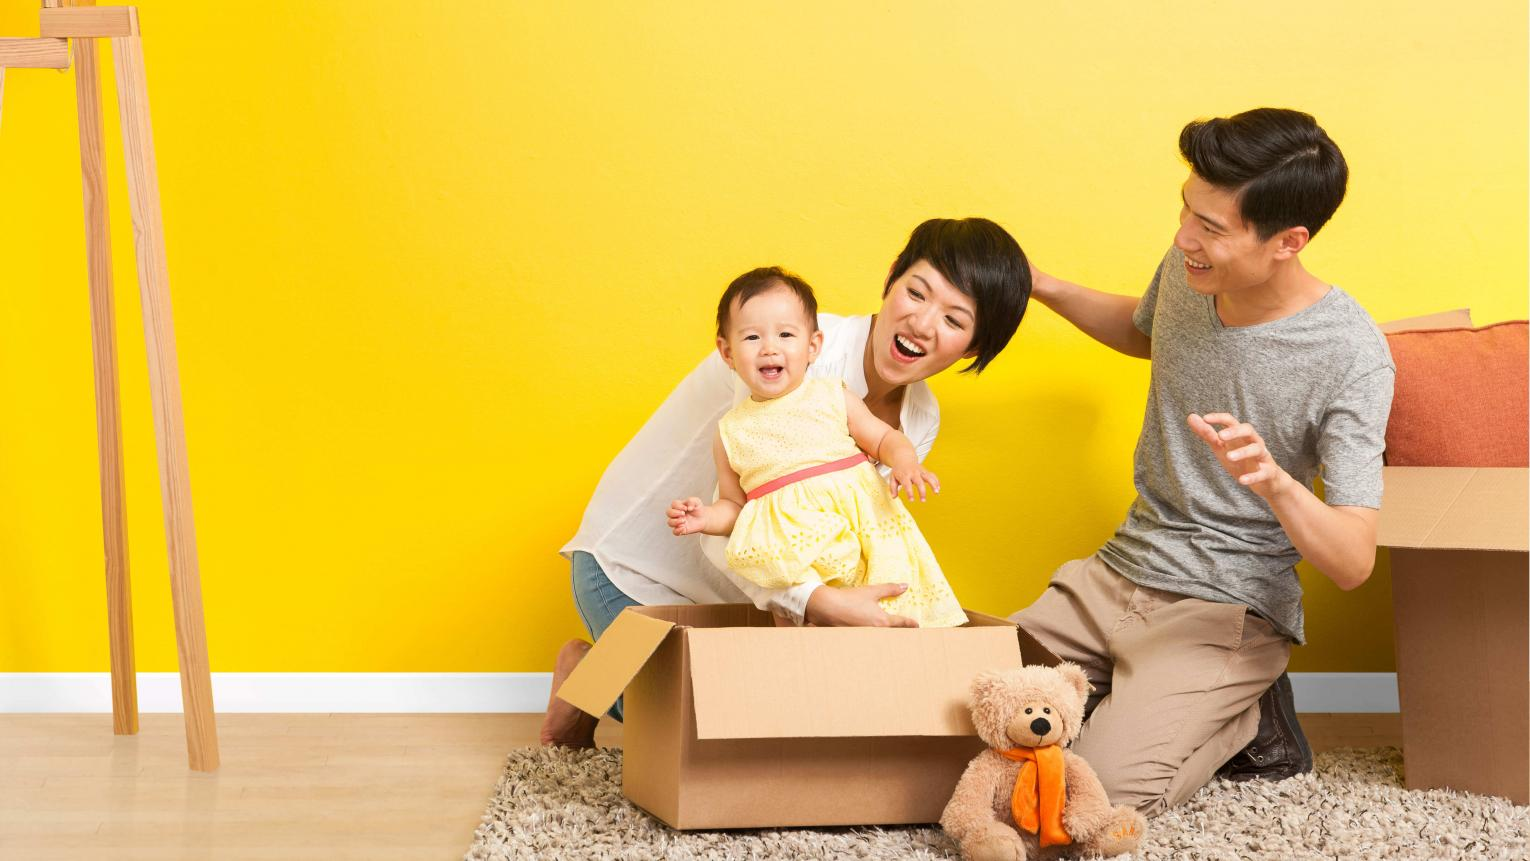 Most new movers are impatient to get decorating straight away, especially if they have a family to settle into their new space.